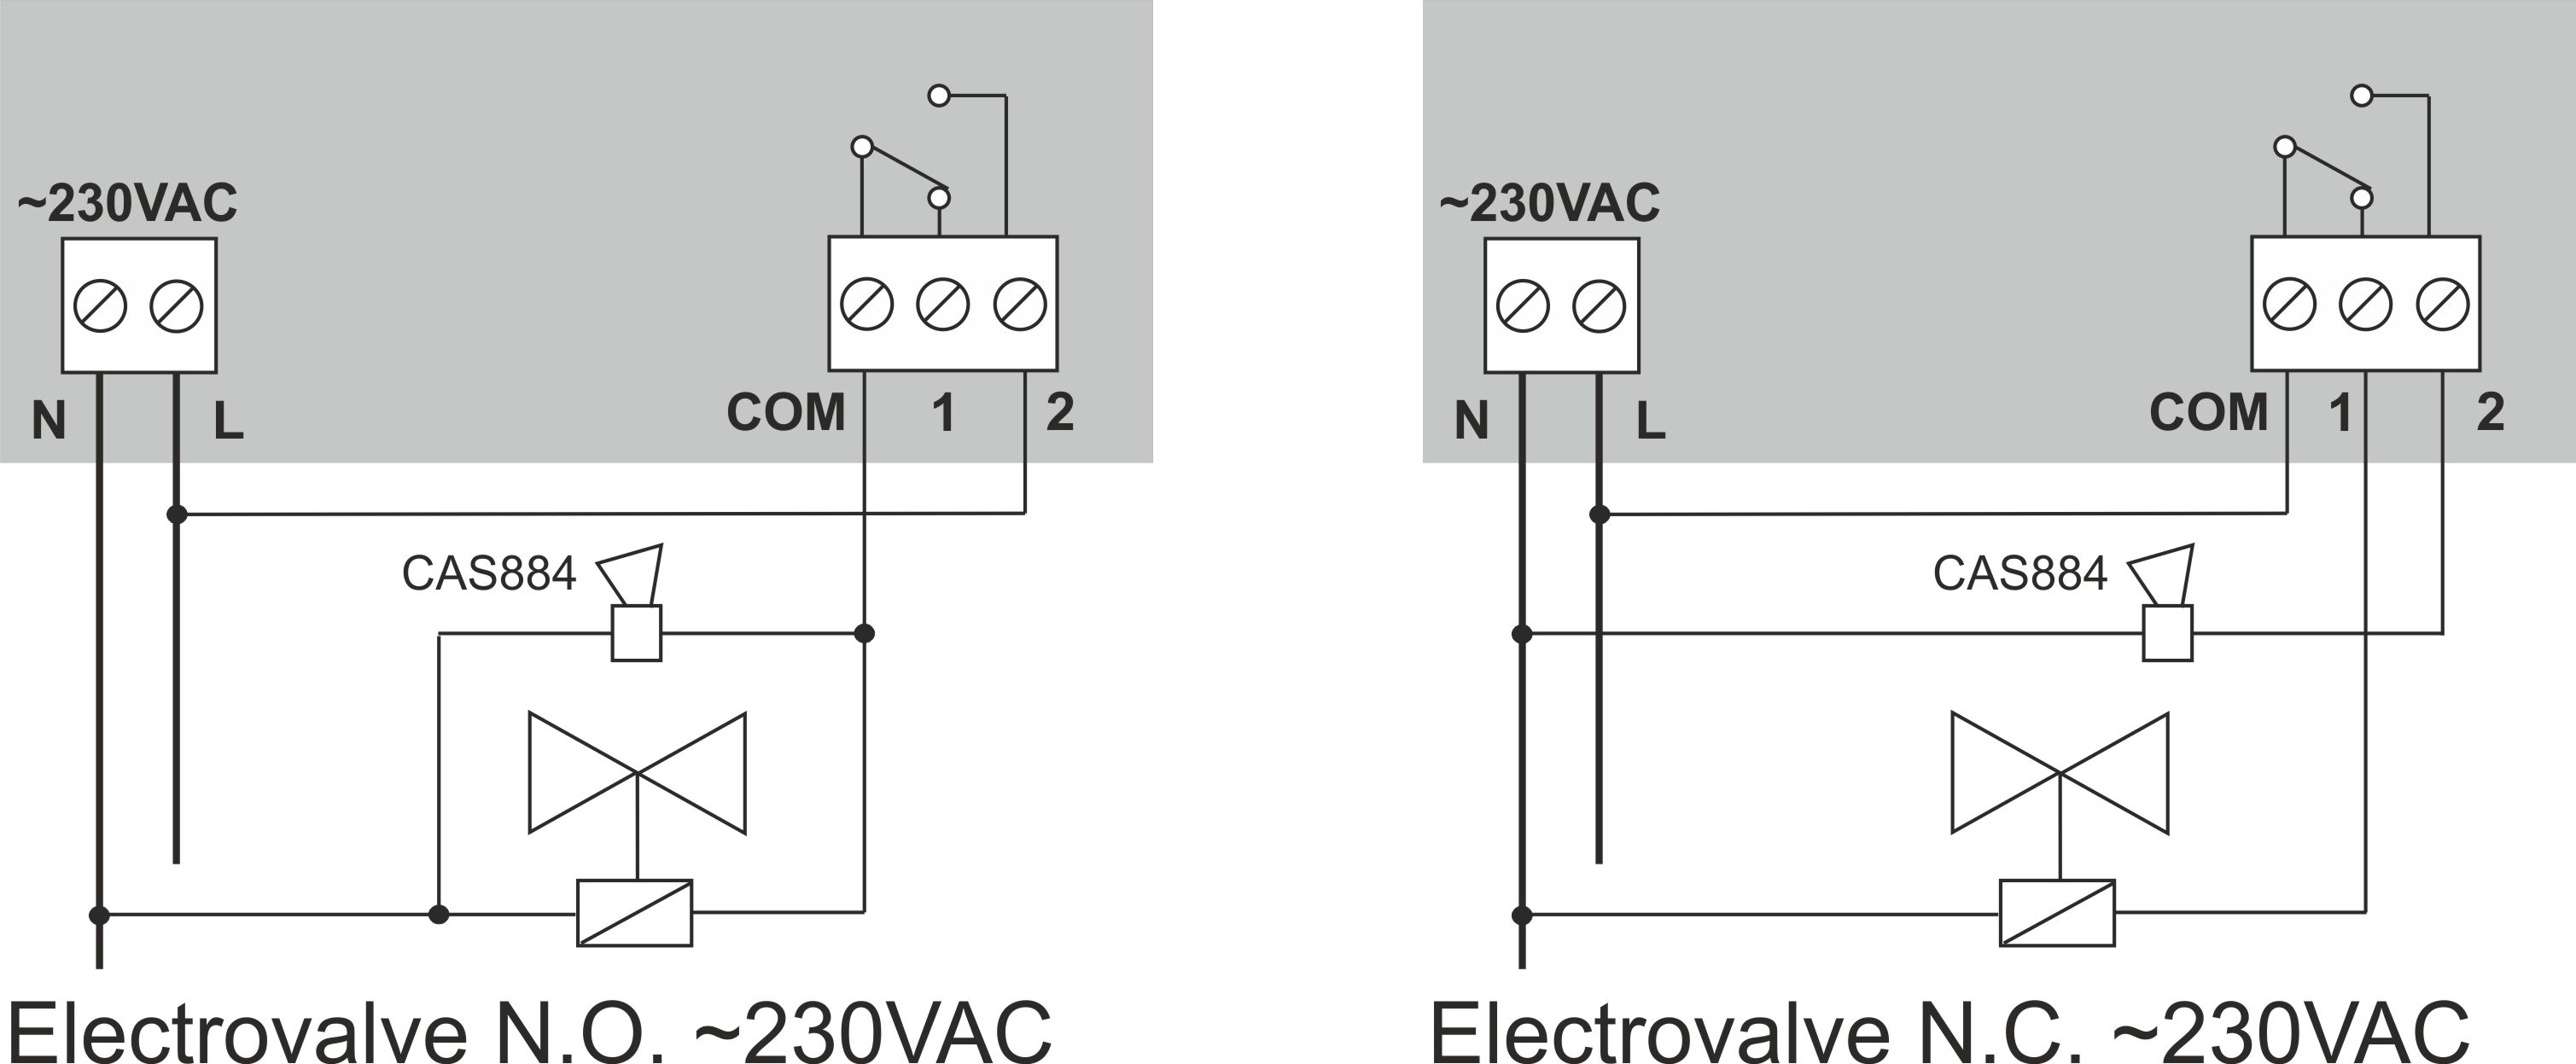 CAS884_ELECTRICAL